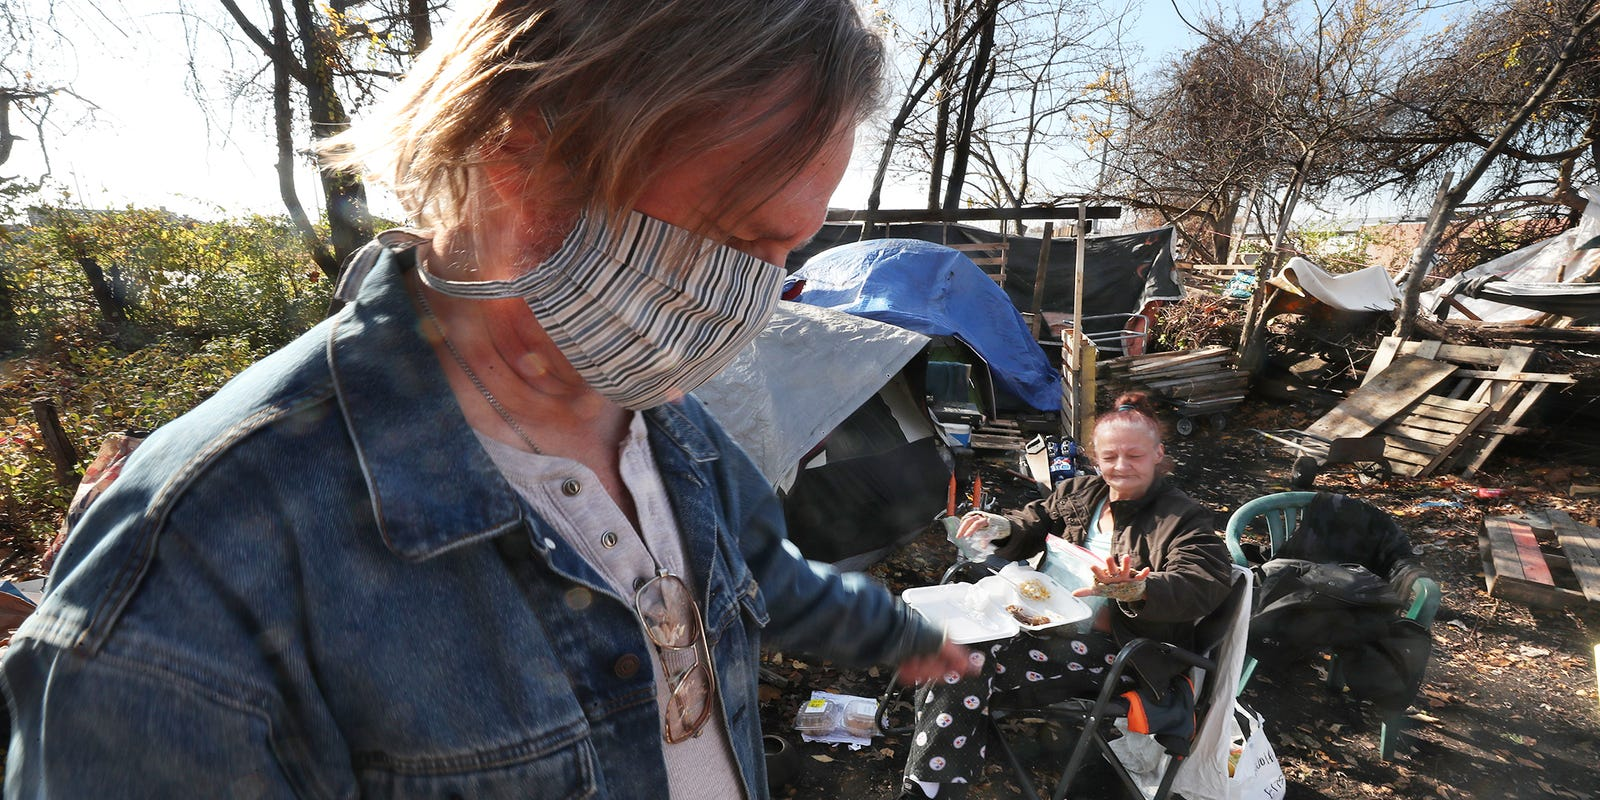 Greater Akron Homeless Community Prepares For Winter Amid Covid 19